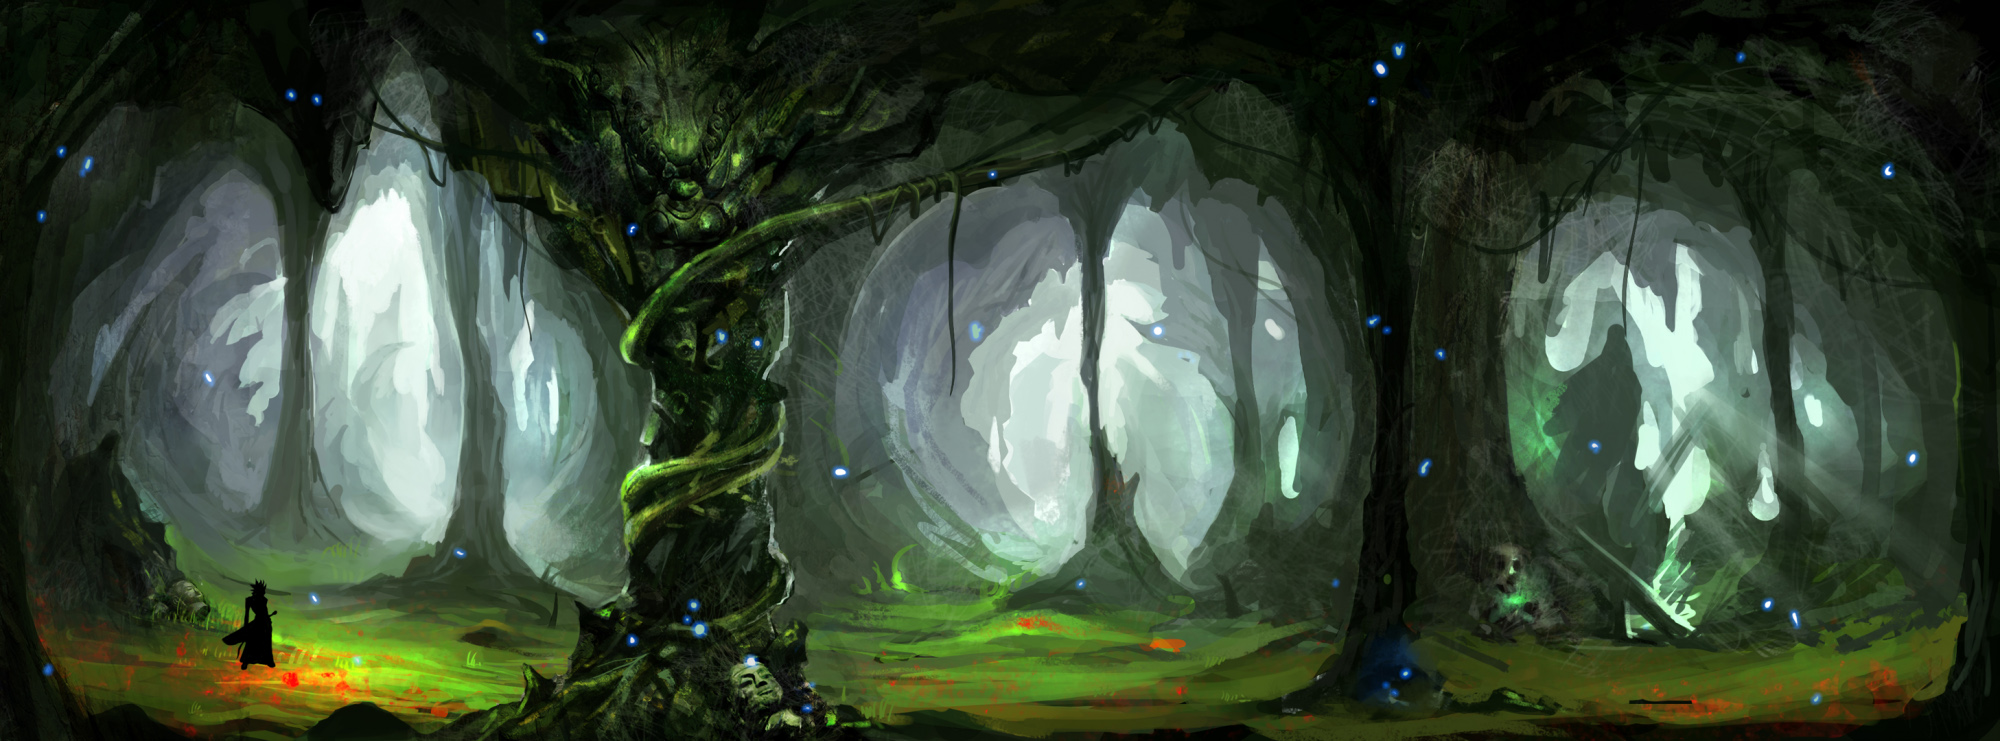 Drawn cavern 2d game background All even Unity3D African and